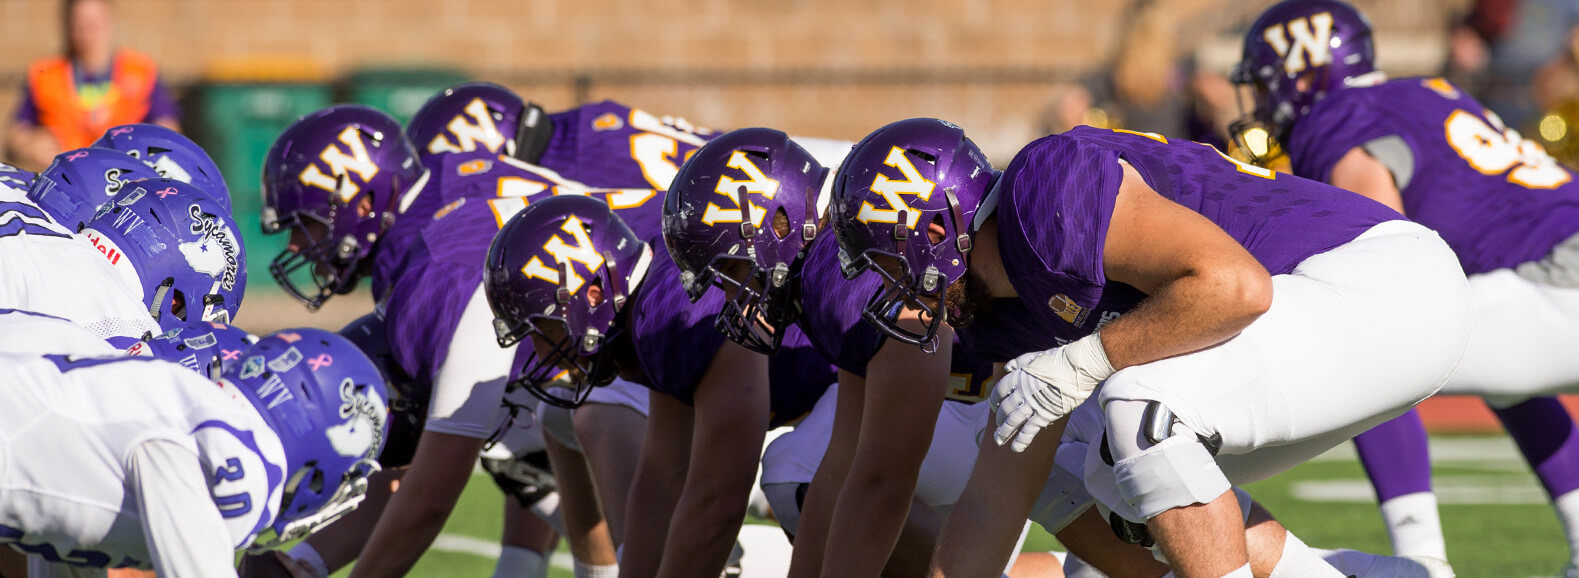 Leatherneck Football